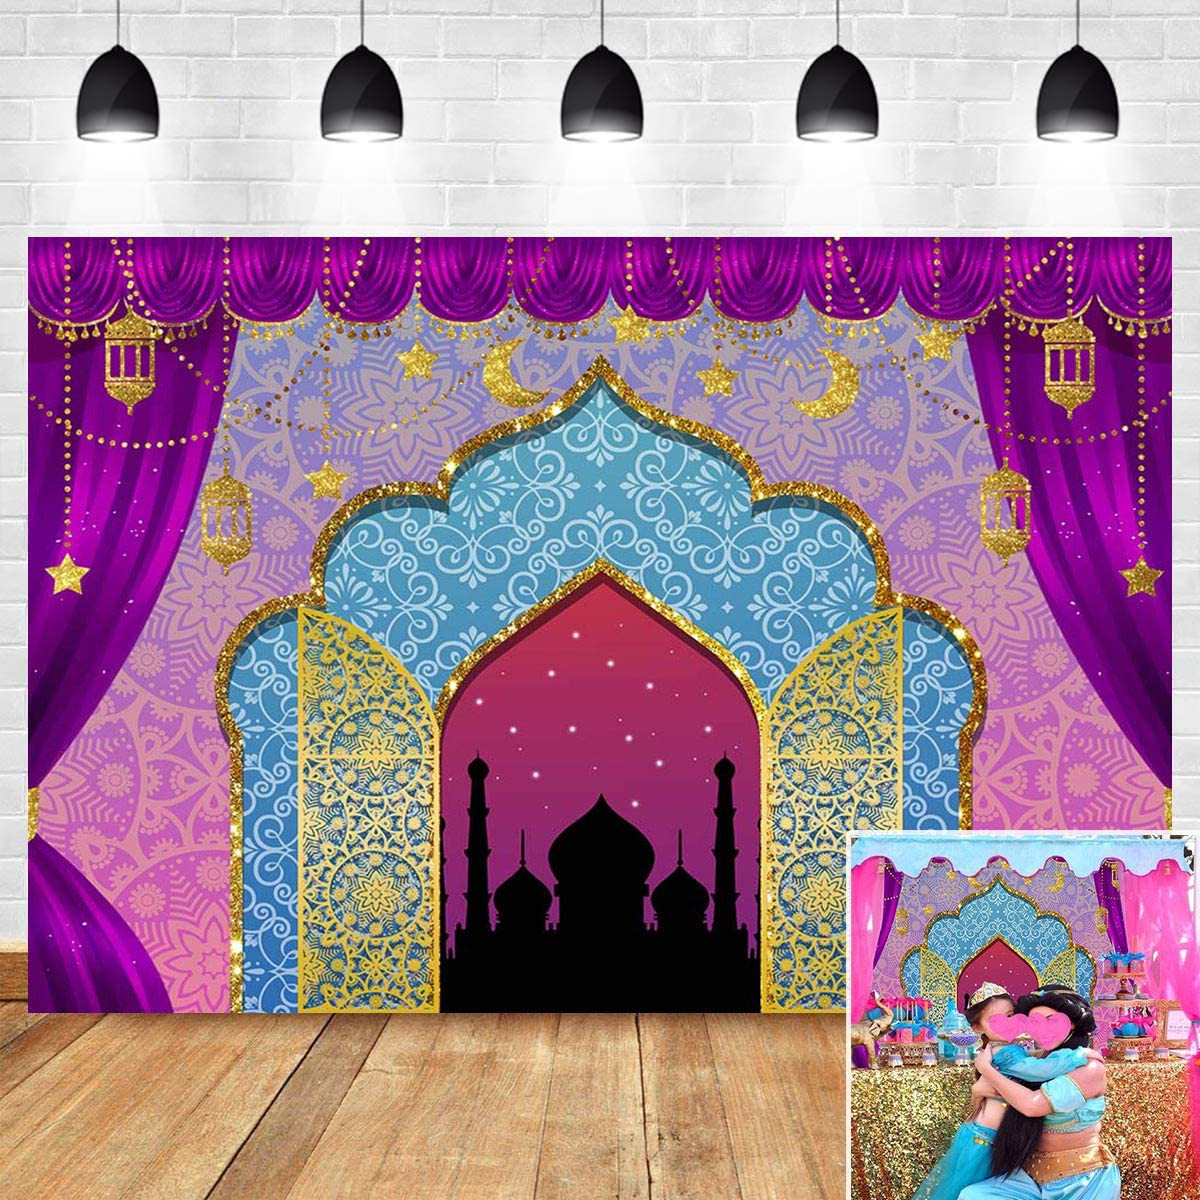 Amazon Com Magic Genie Indian Luxurious Photo Background Baby Shower Supplies Arabian Nights Moroccan Party Sweet Princess Birthday Party Banner Decorations Photography Backdrop Vinyl 5x3ft Camera Photo,Best Color Paint For Small Bedroom